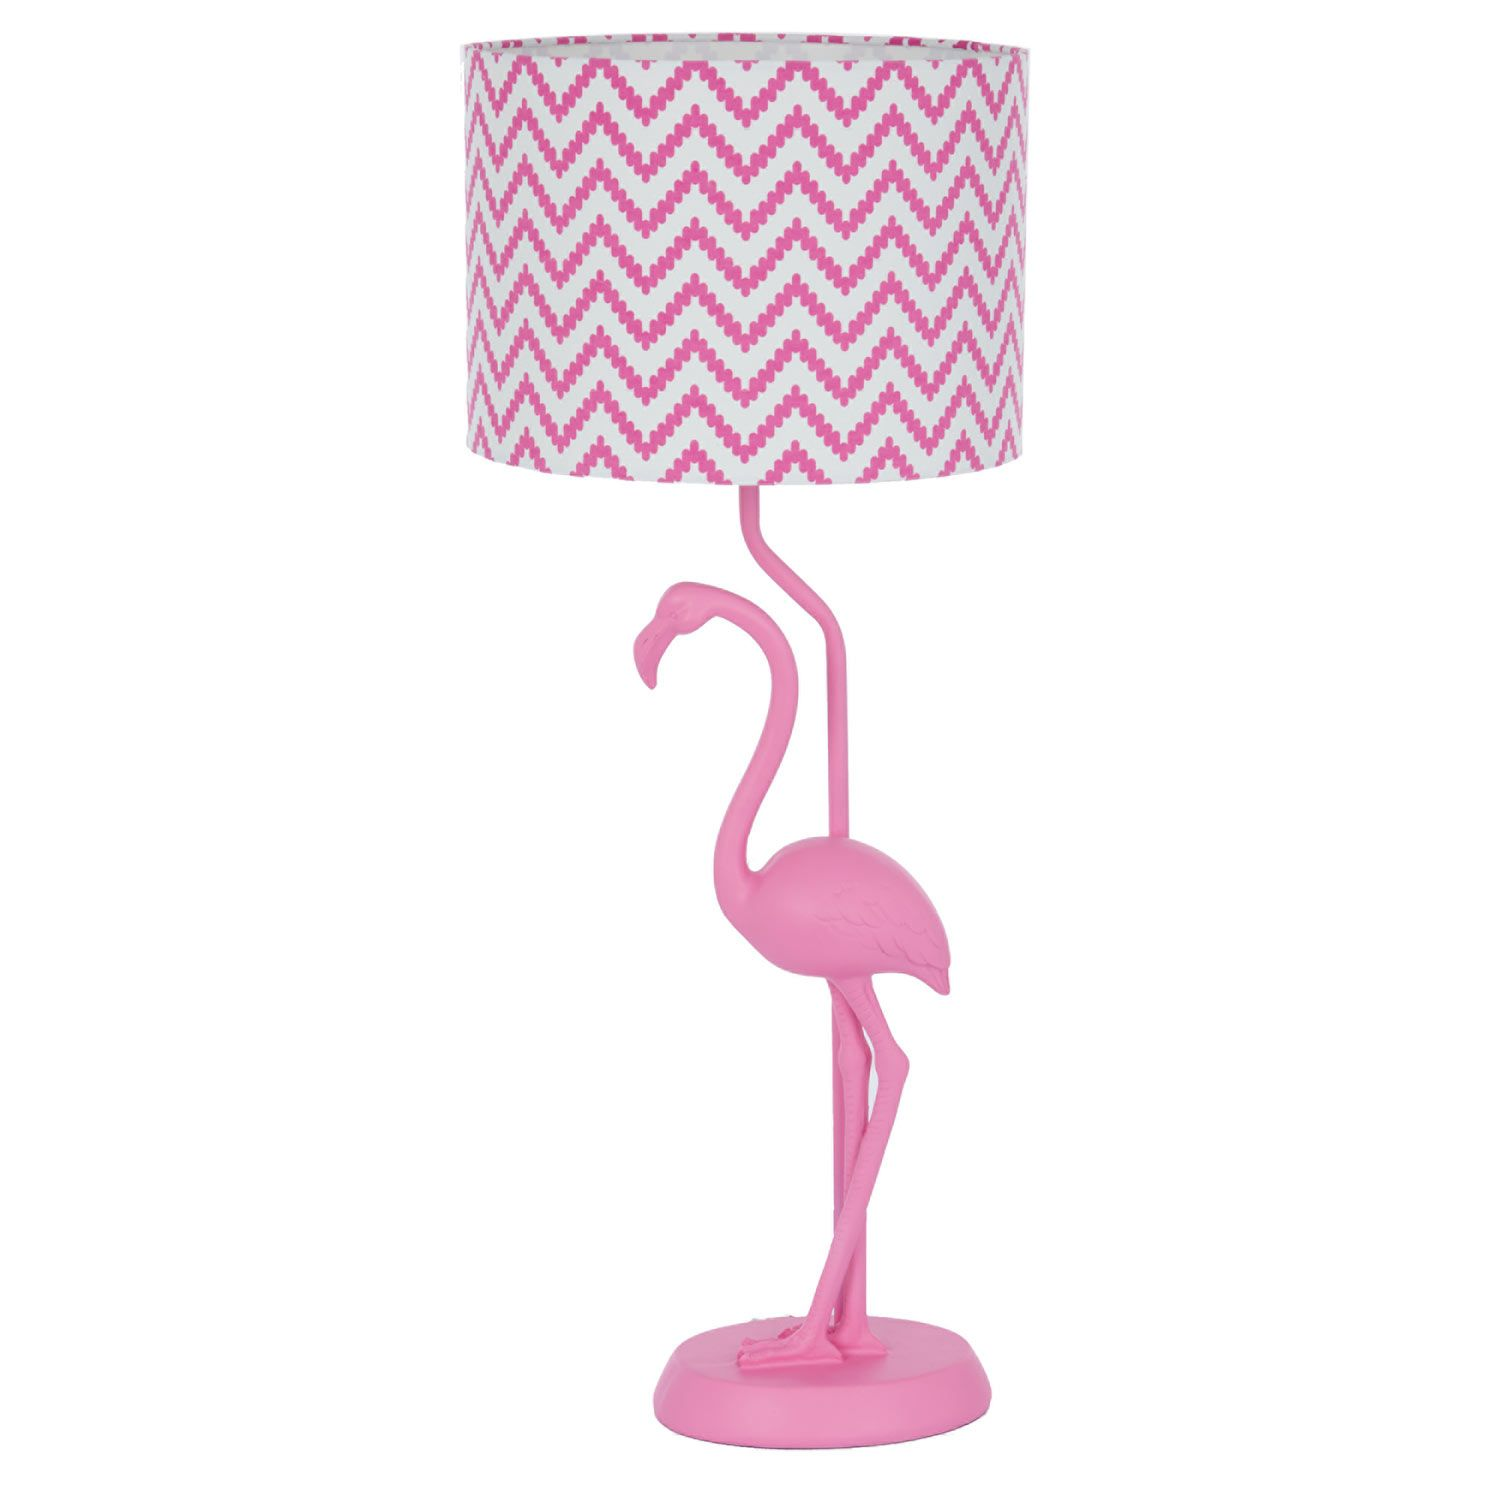 Pink flamingo lamp tk maxx furniture for apartment pinterest pink flamingos flamingo Tk maxx home bedroom furniture